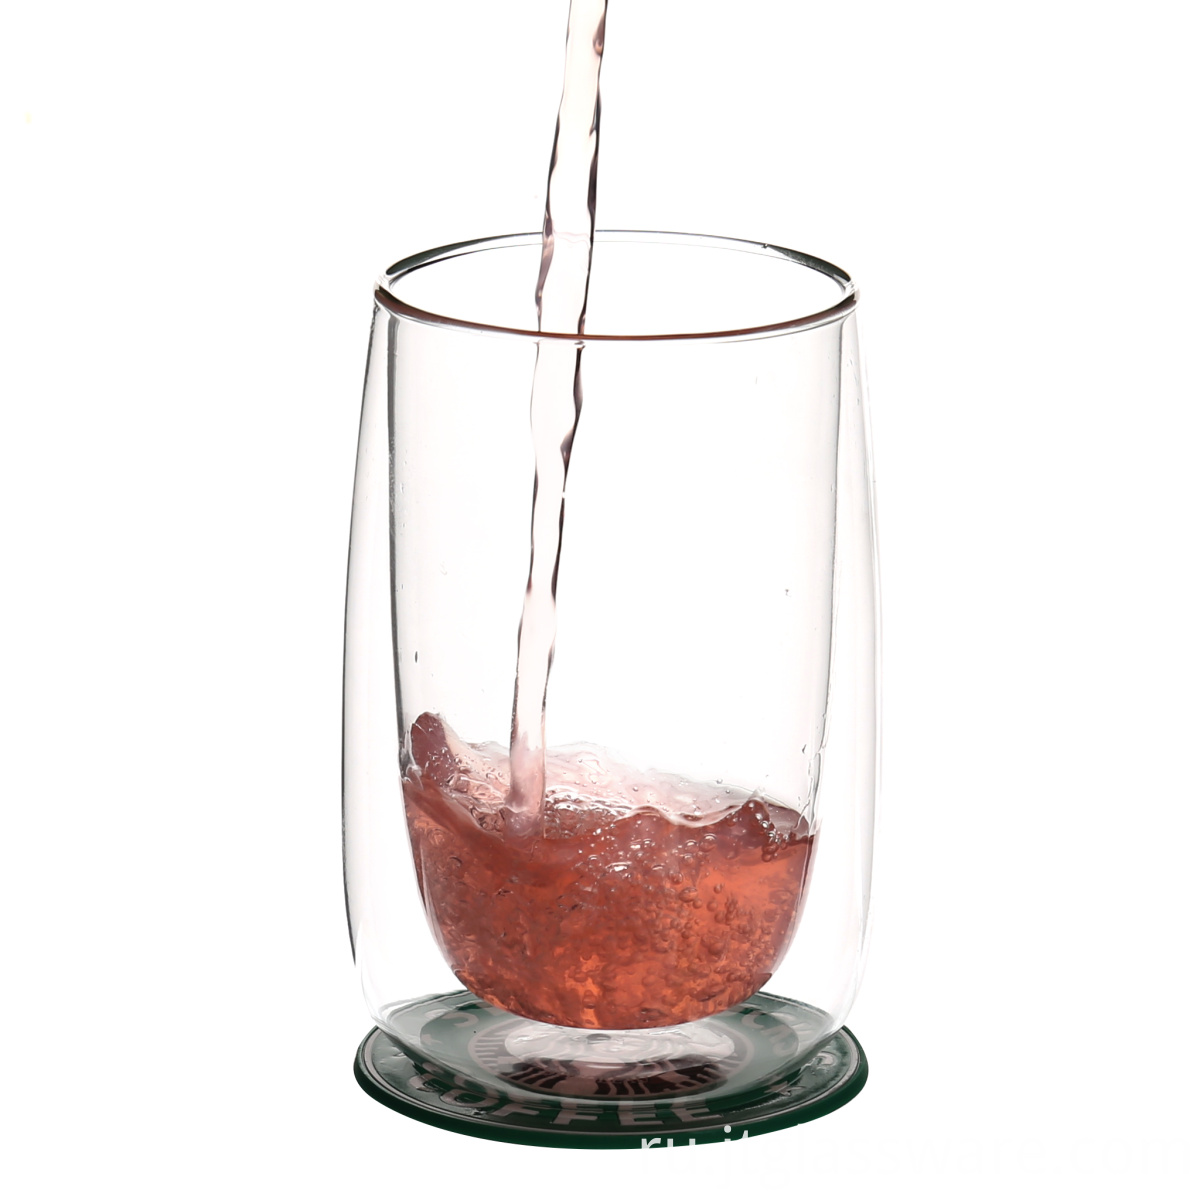 soft drinking glass cup